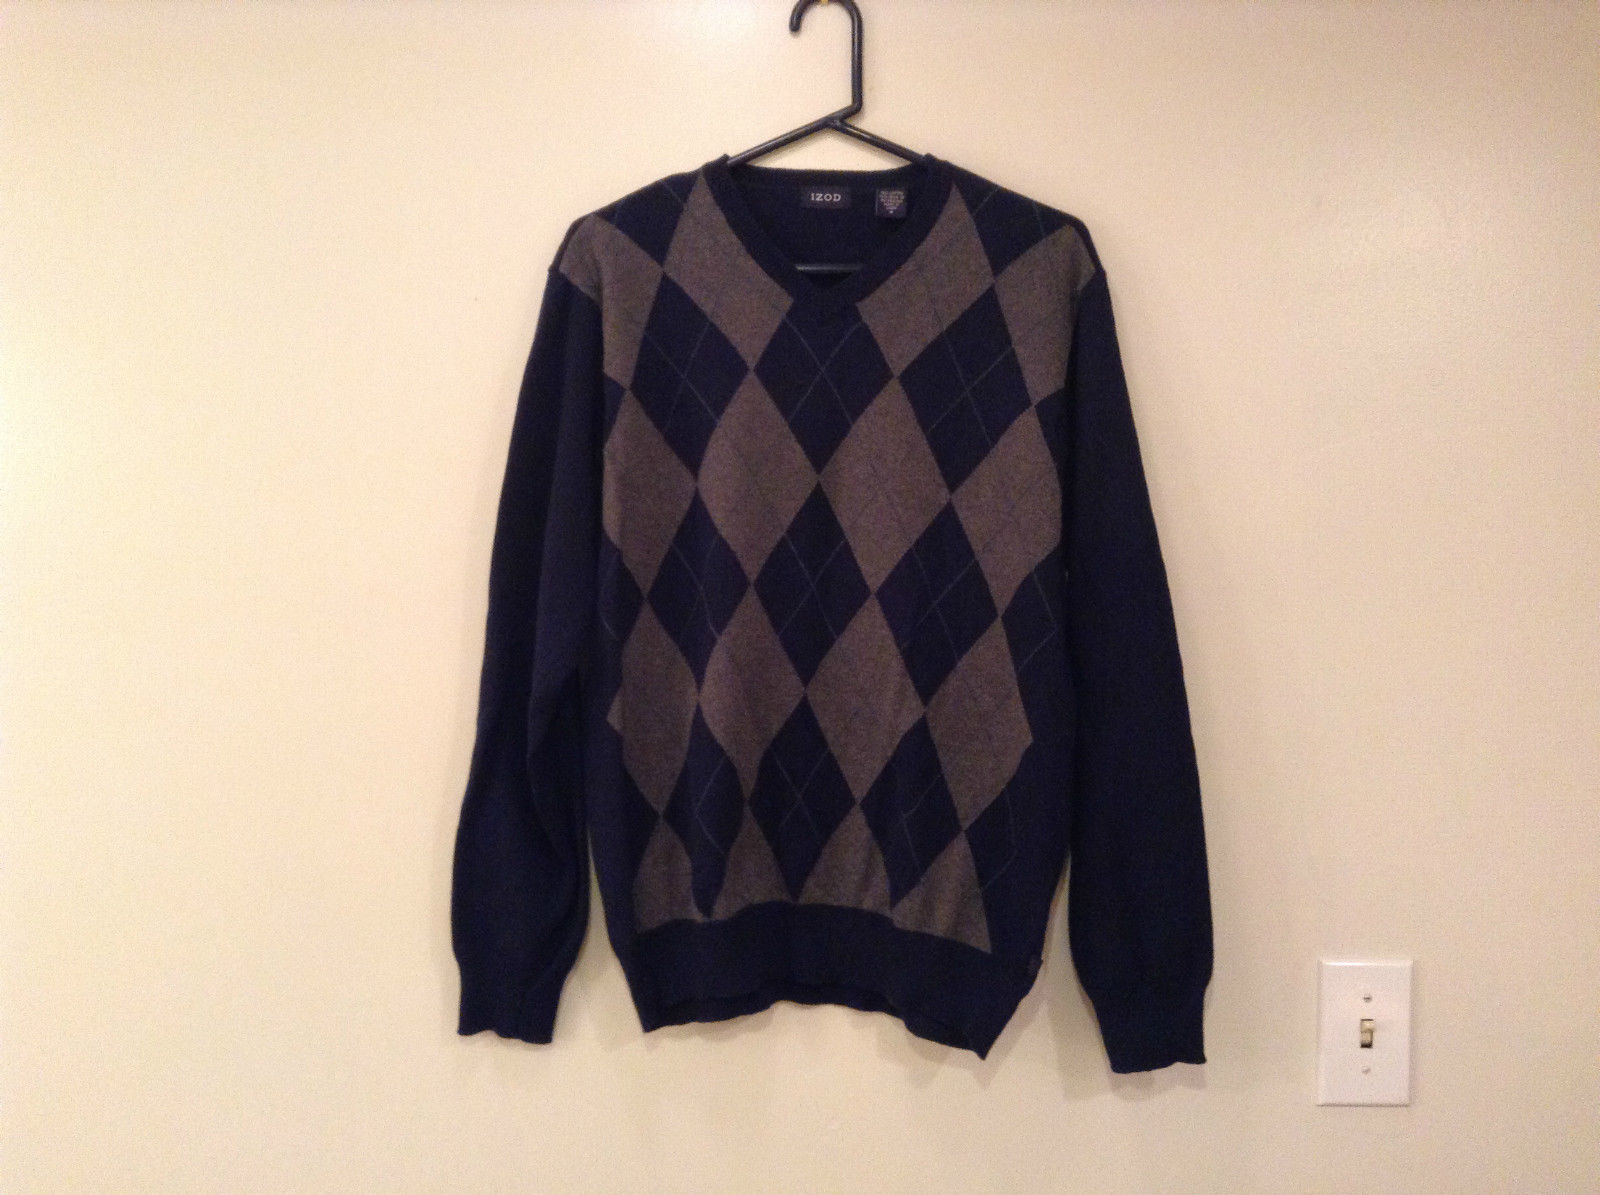 Navy Blue Gray with Classic Diamond Pattern IZOD Long Sleeve Sweater Size Medium